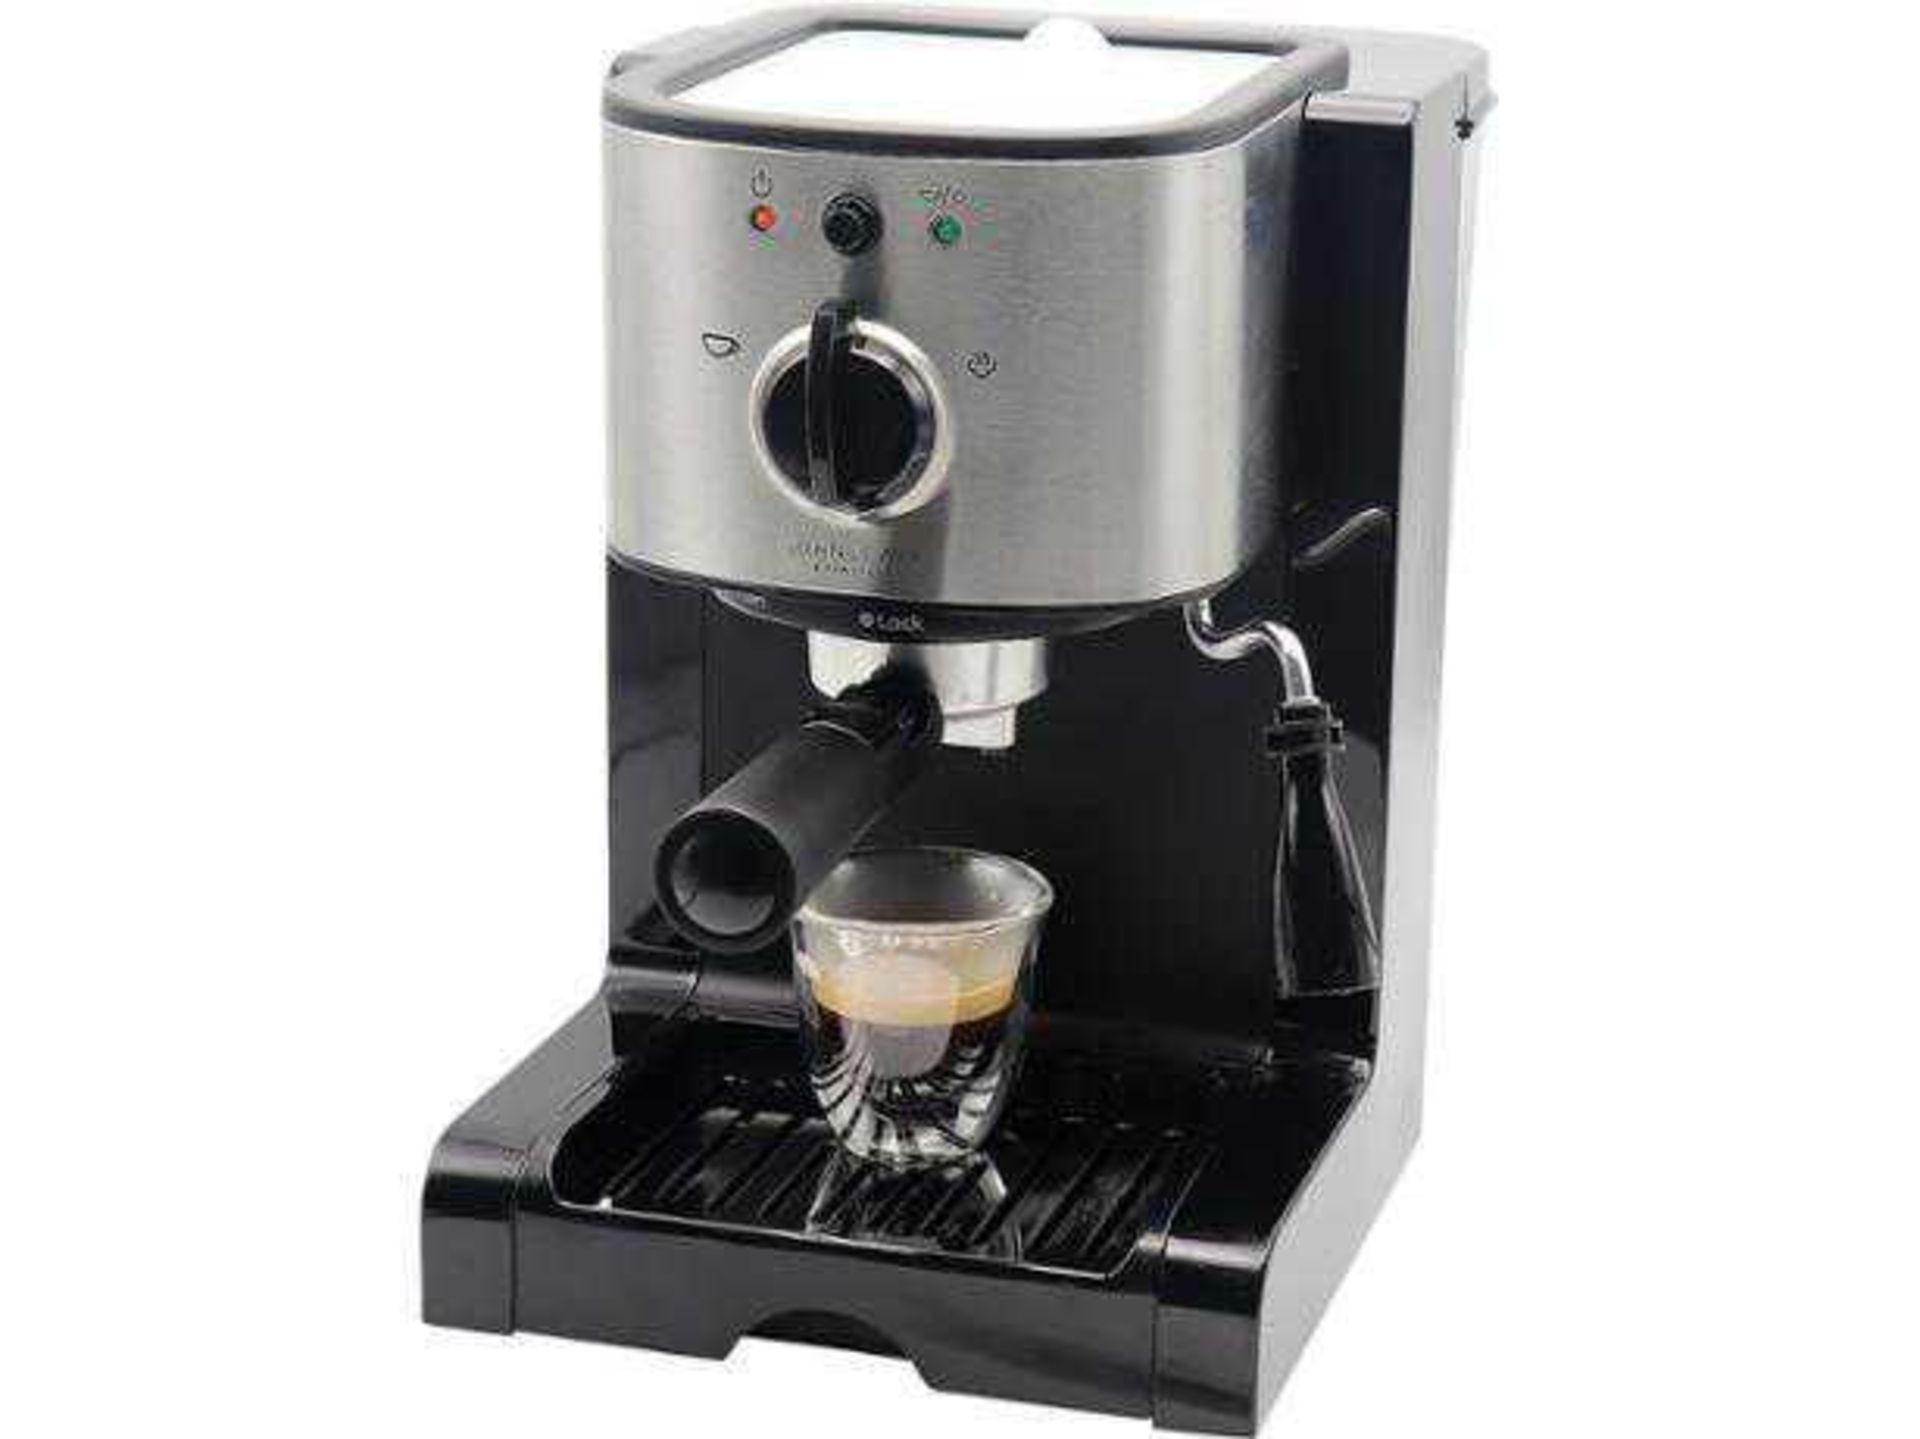 Lot 115 - RRP £70 Boxed John Lewis Pump Espresso Coffee Machine Stainless Steel